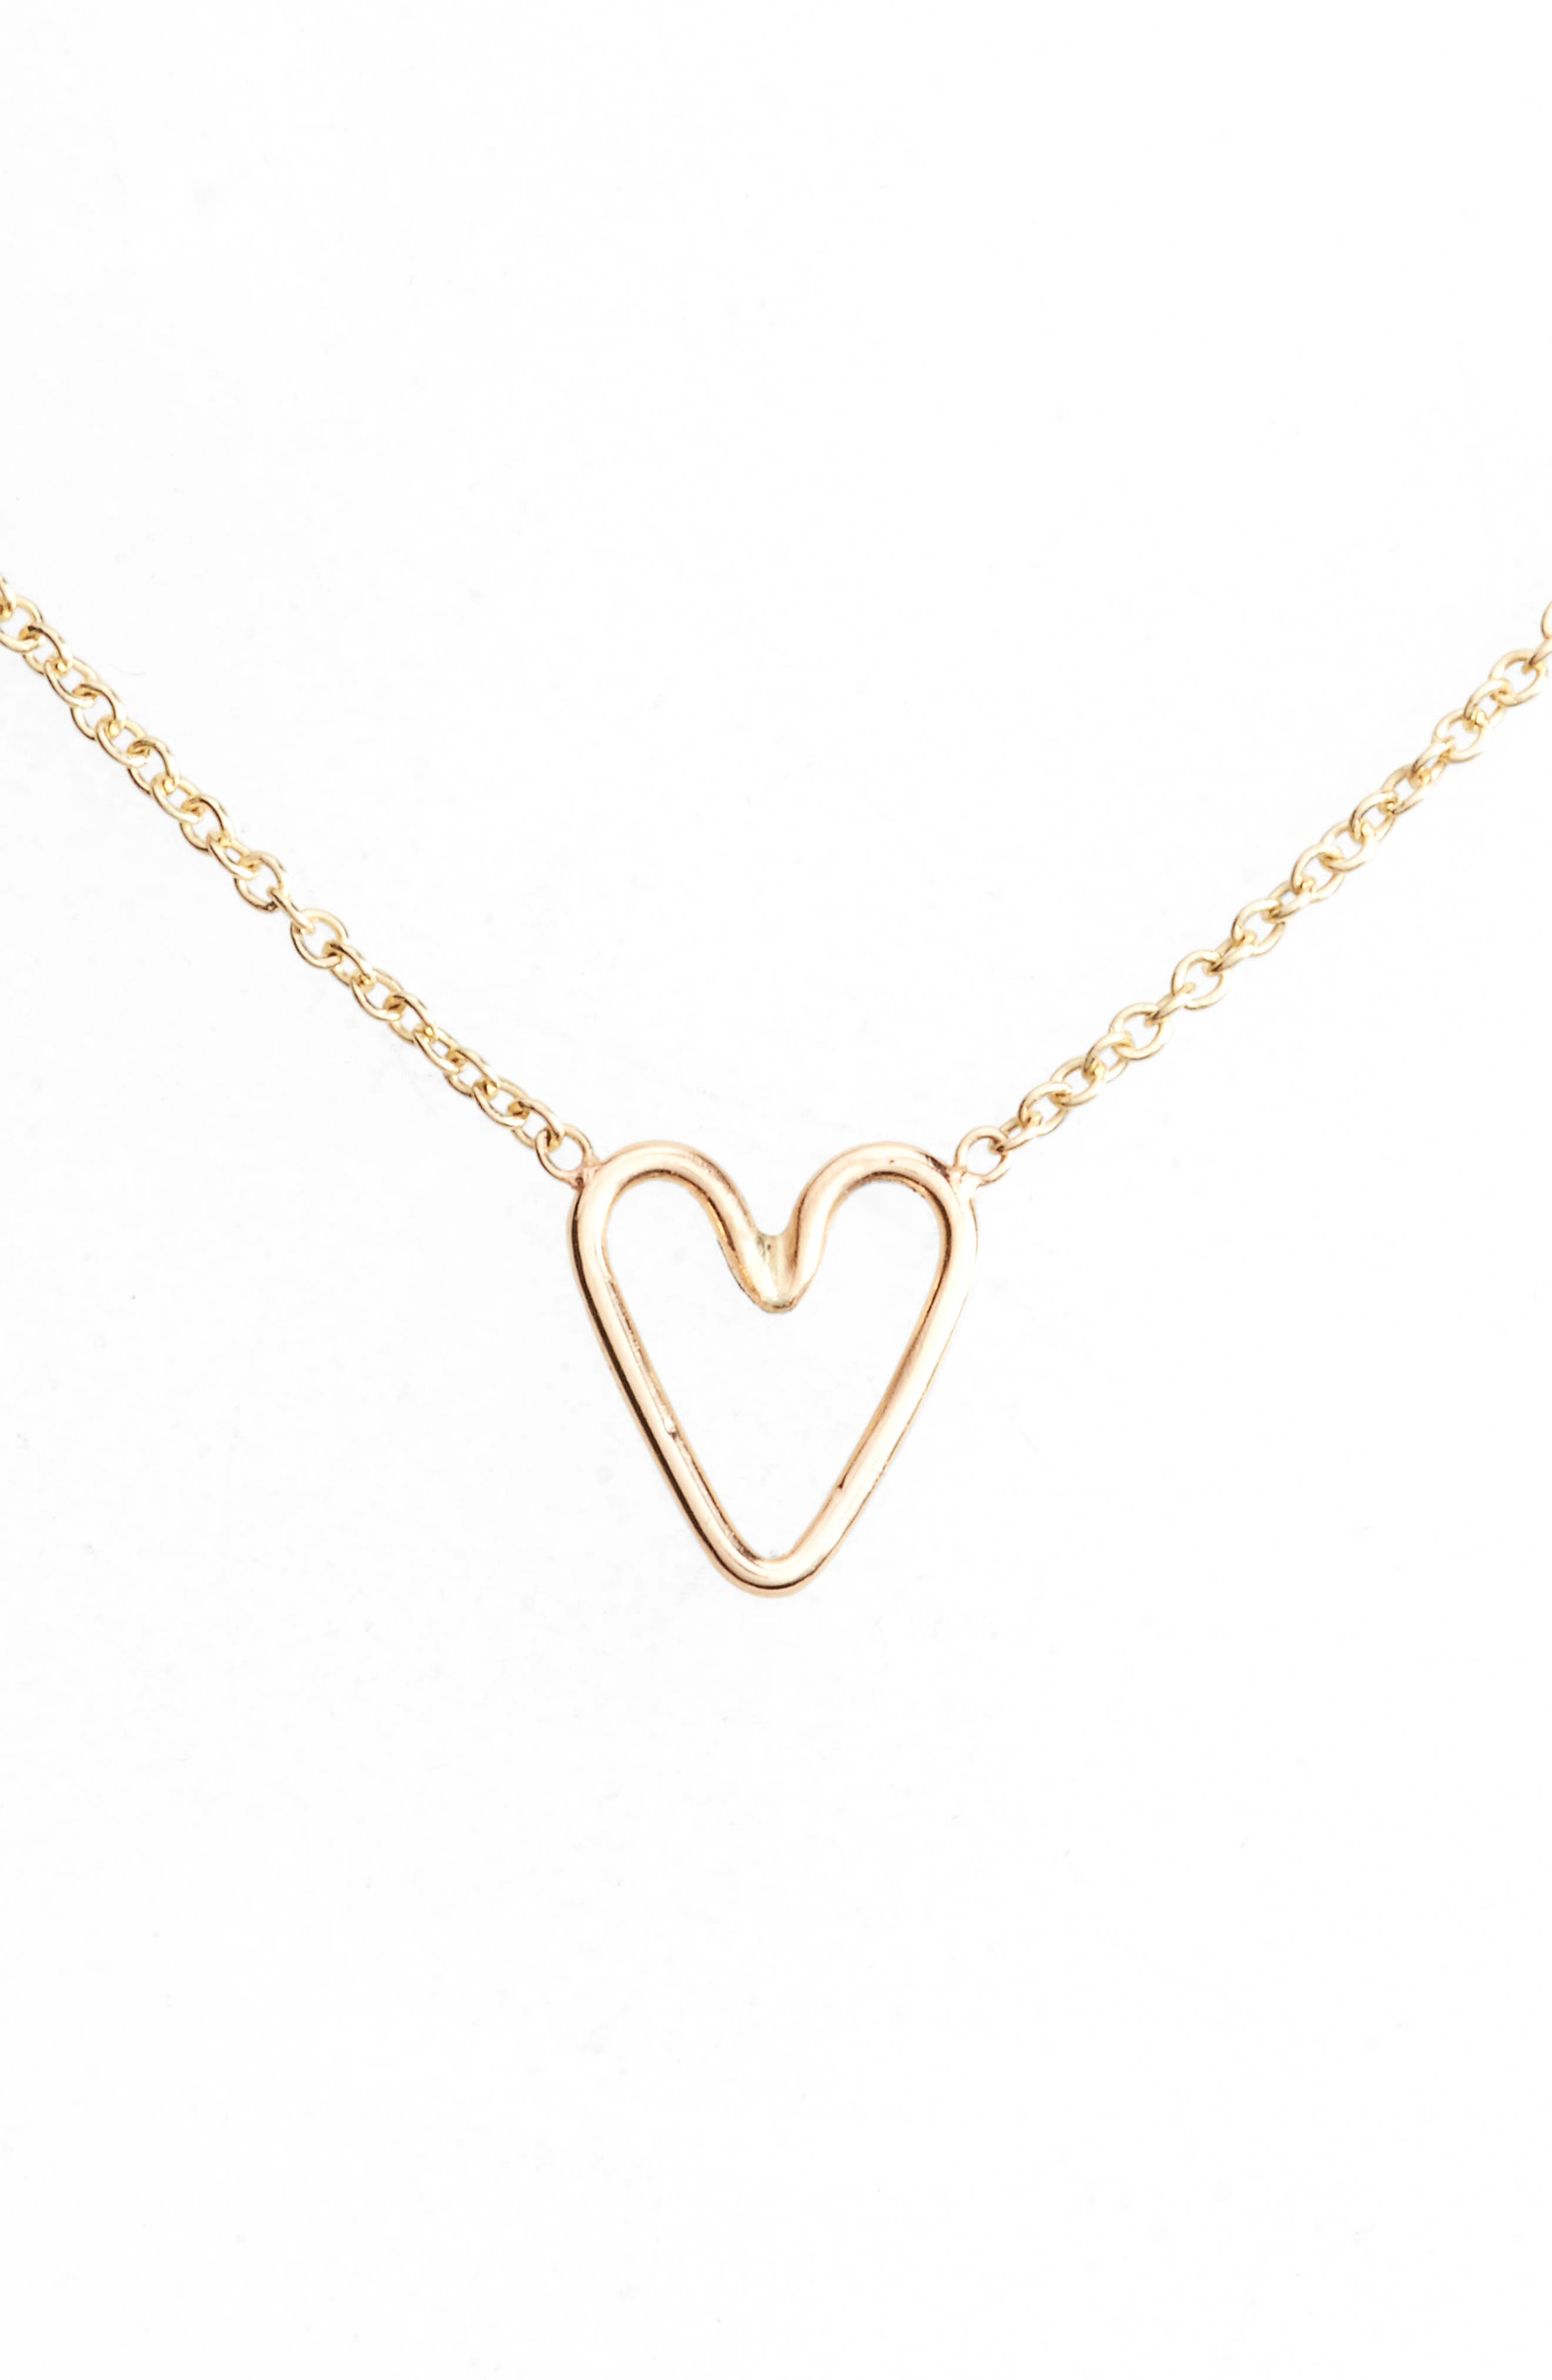 Tiny Open Heart Pendant Necklace,                         Main,                         color, Yellow Gold